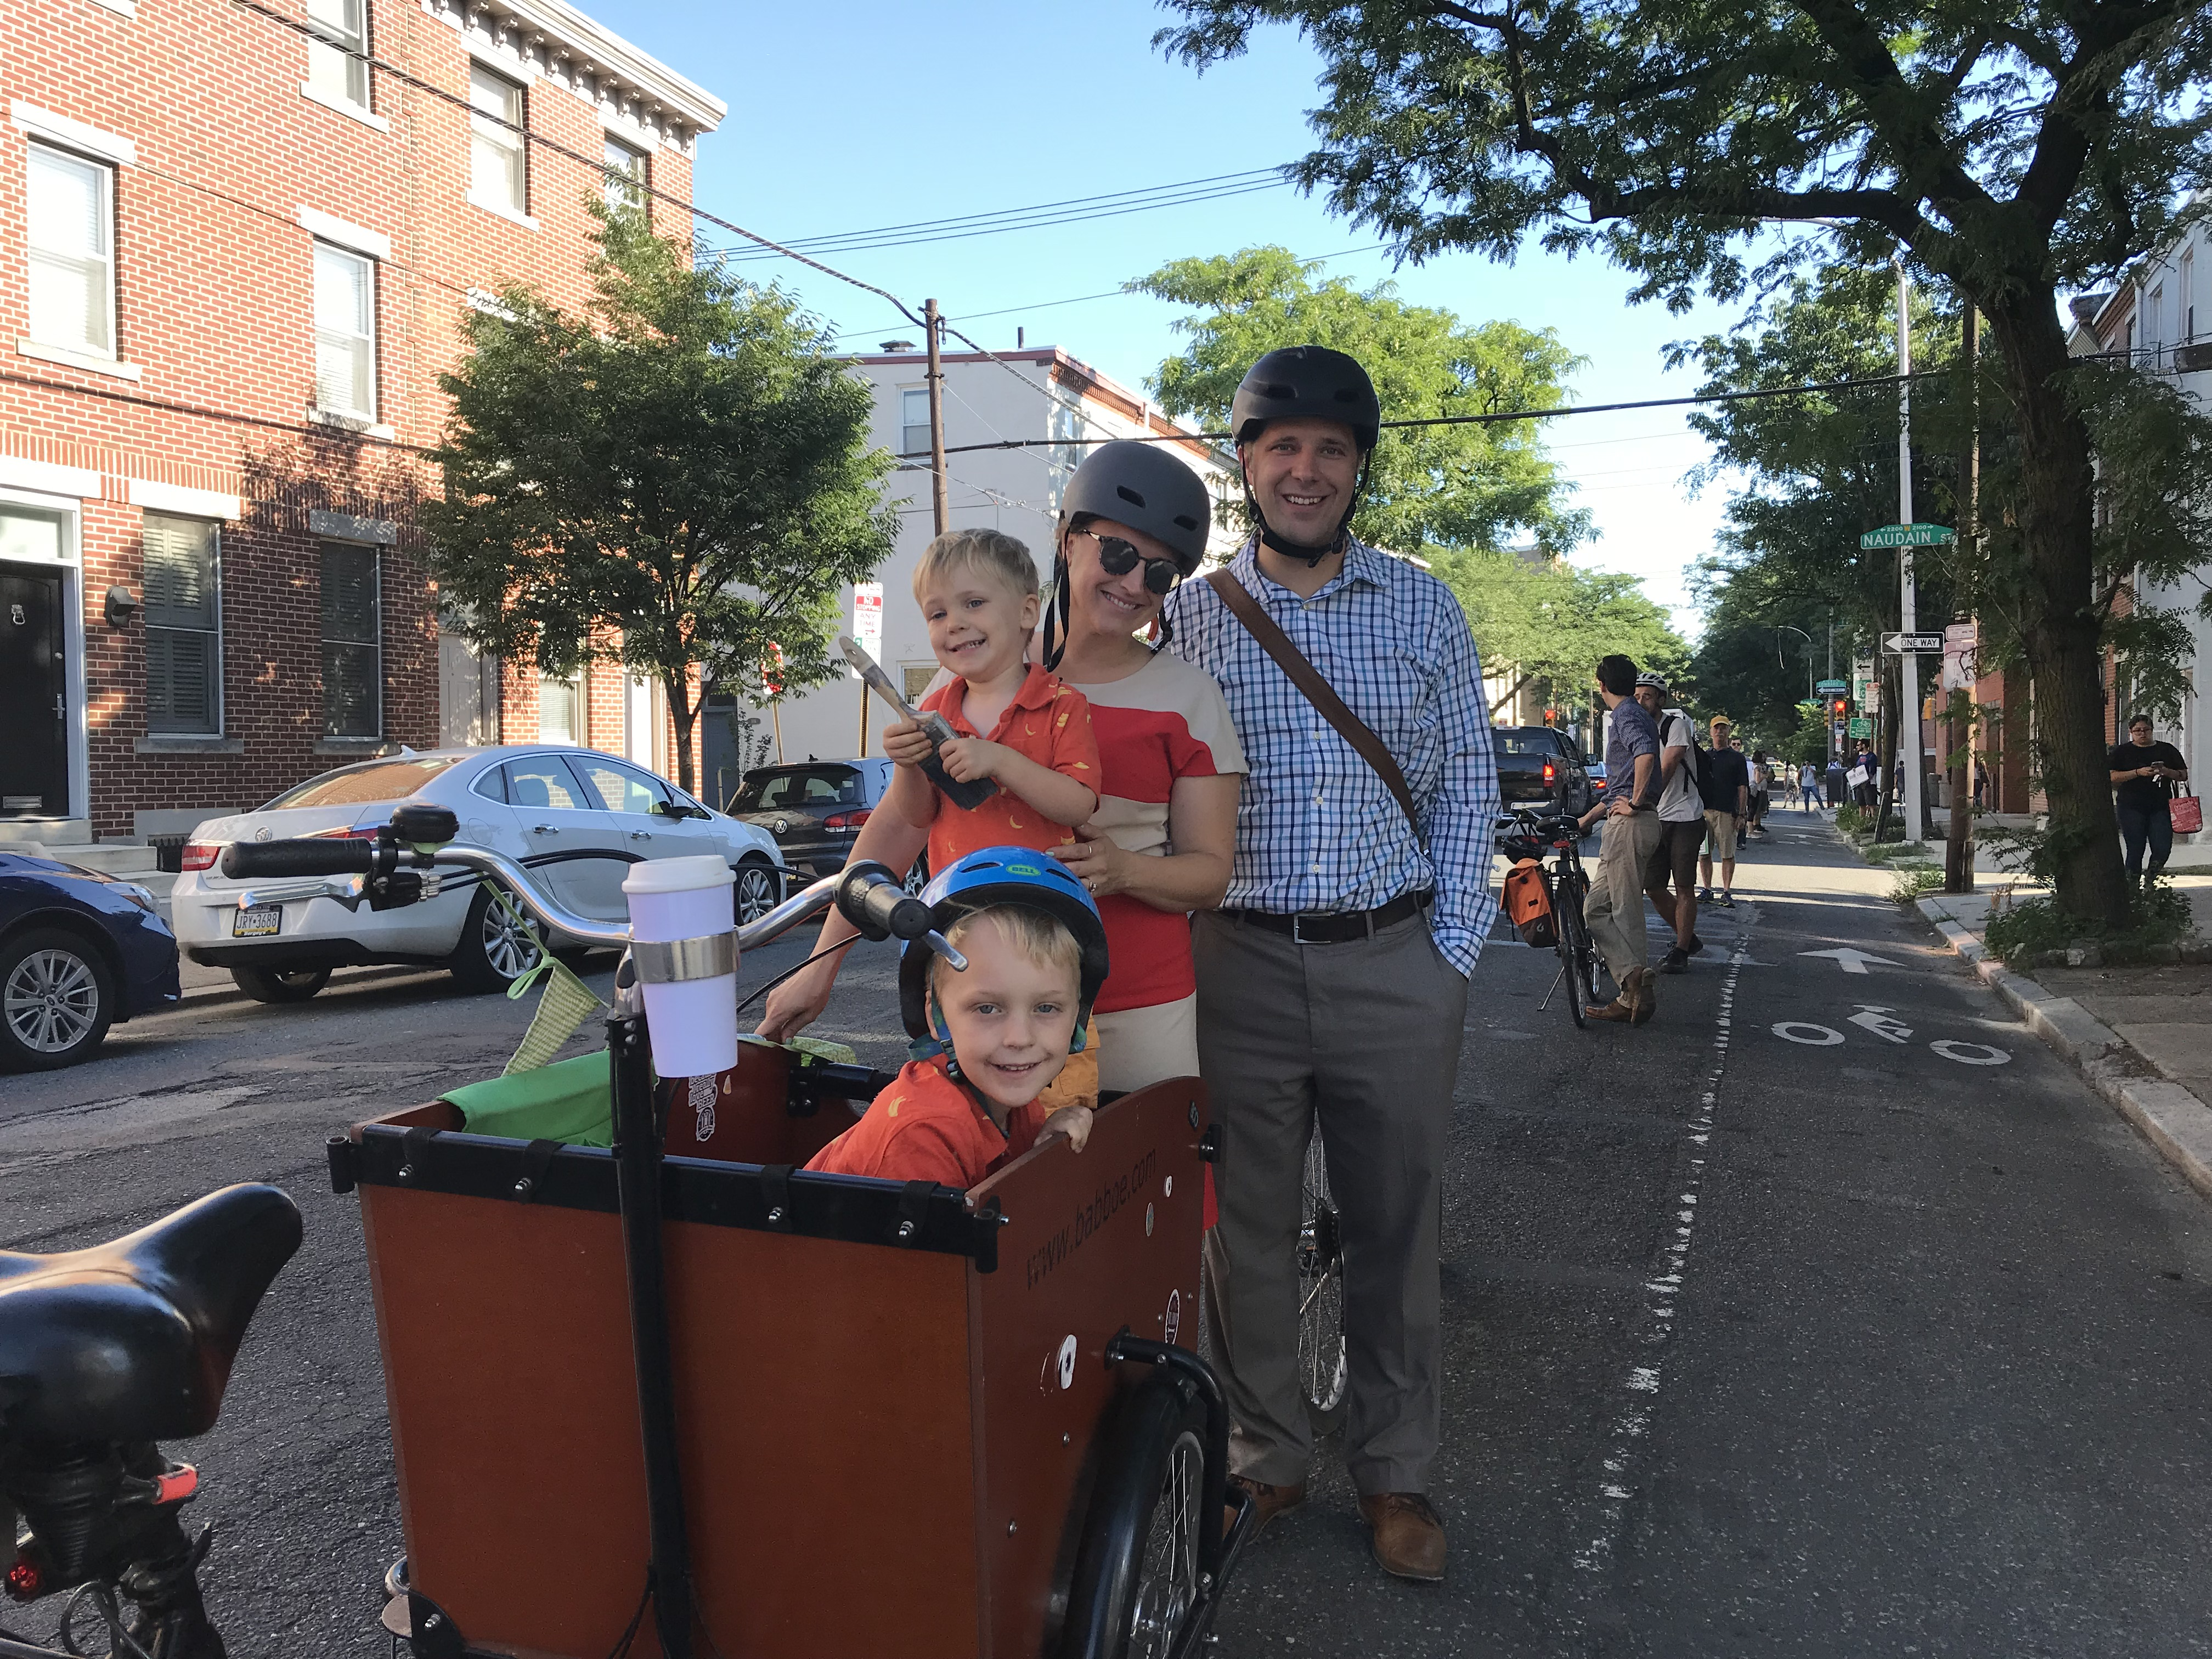 Robert and Kelly Piasecki, with their children Miles and Owen, joined a demonstration to draw attention to the poor condition of the bike lane on 22nd Street.